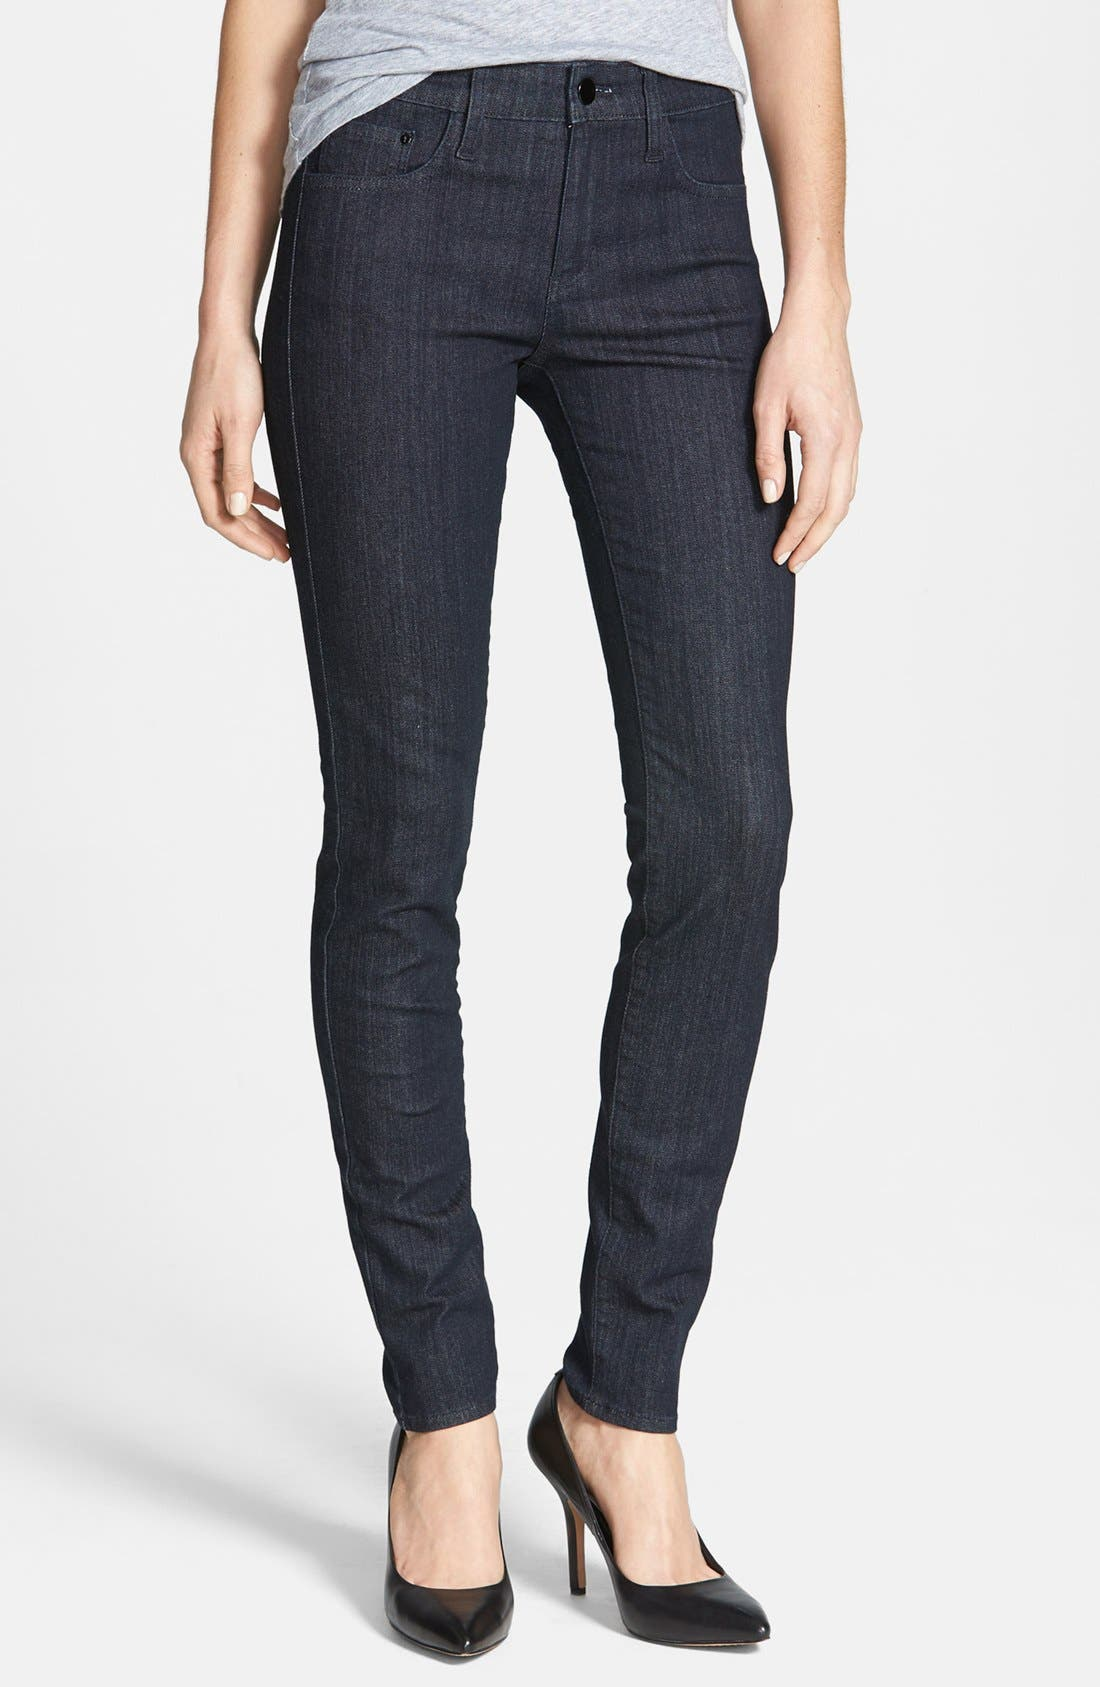 Alternate Image 1 Selected - !iT Collective 'Lauren' Easy Skinny Jeans (Pure)